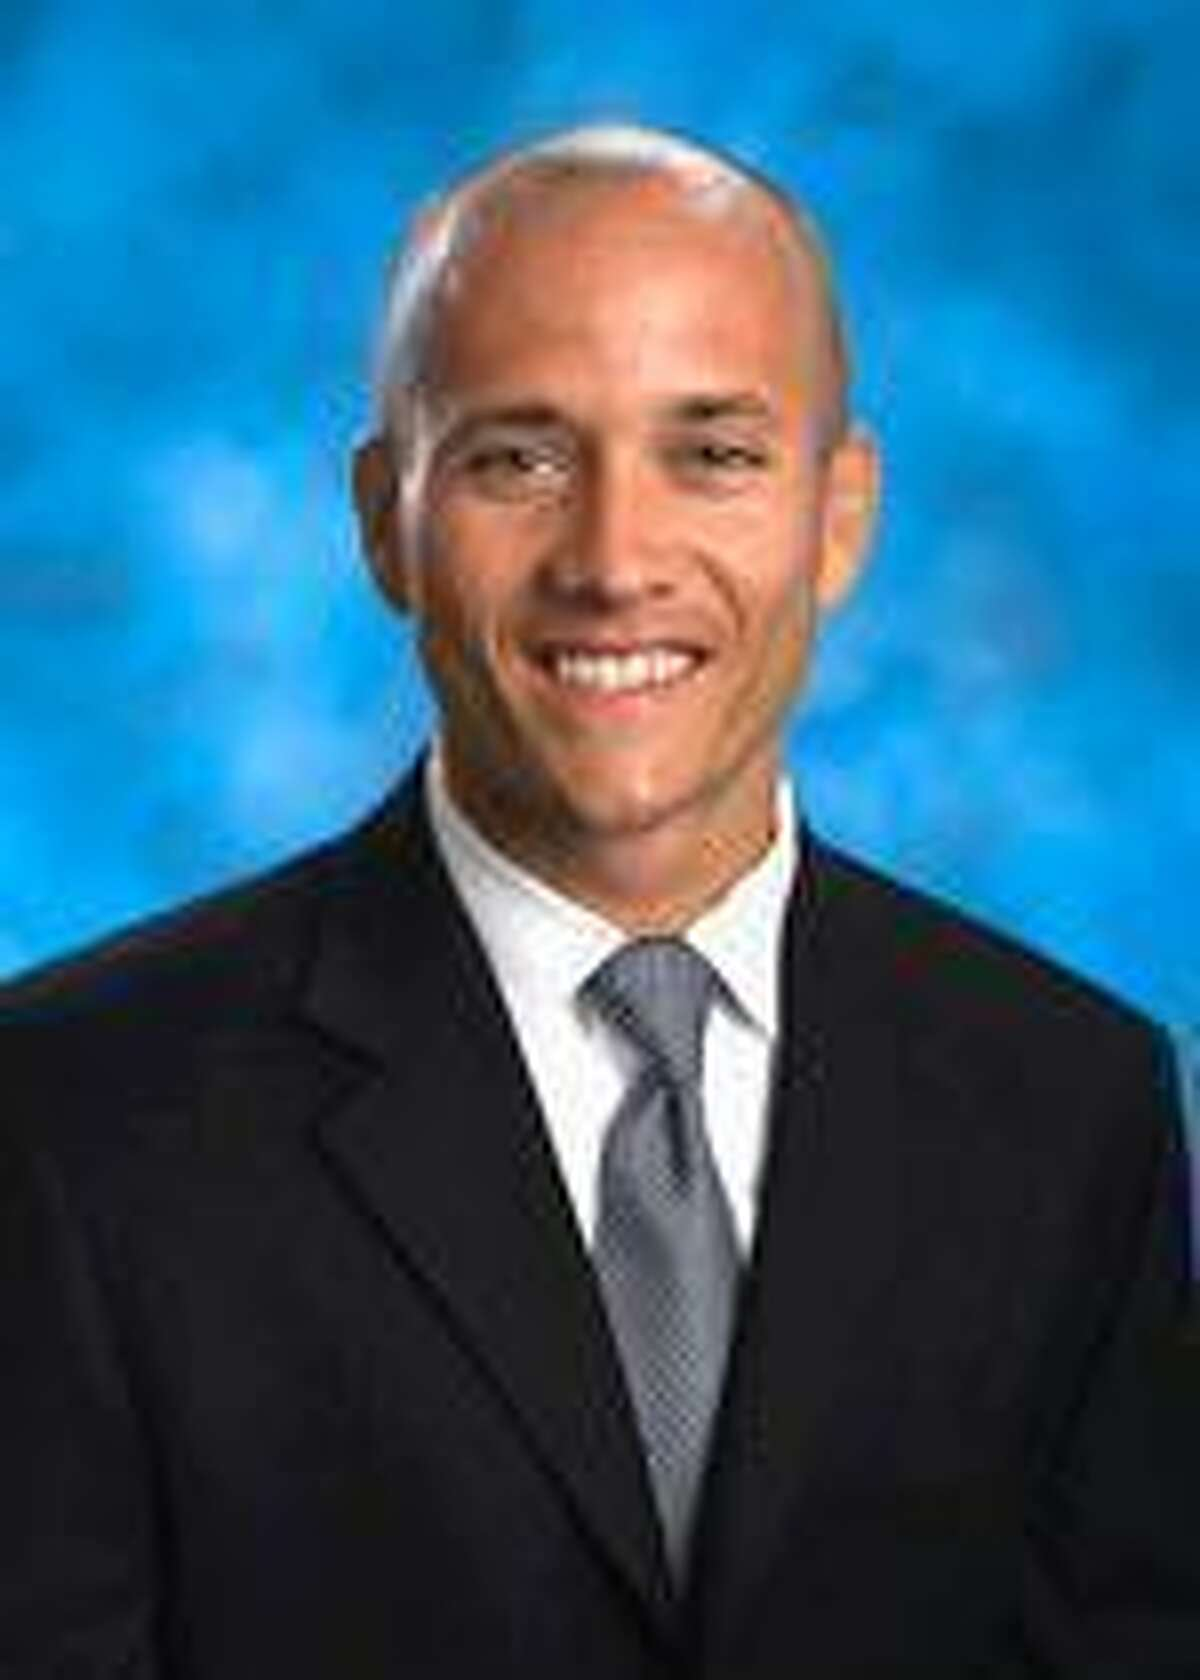 Michael Merwarth has been been named executive vice president of enterprise strategy and marketing at USAA.